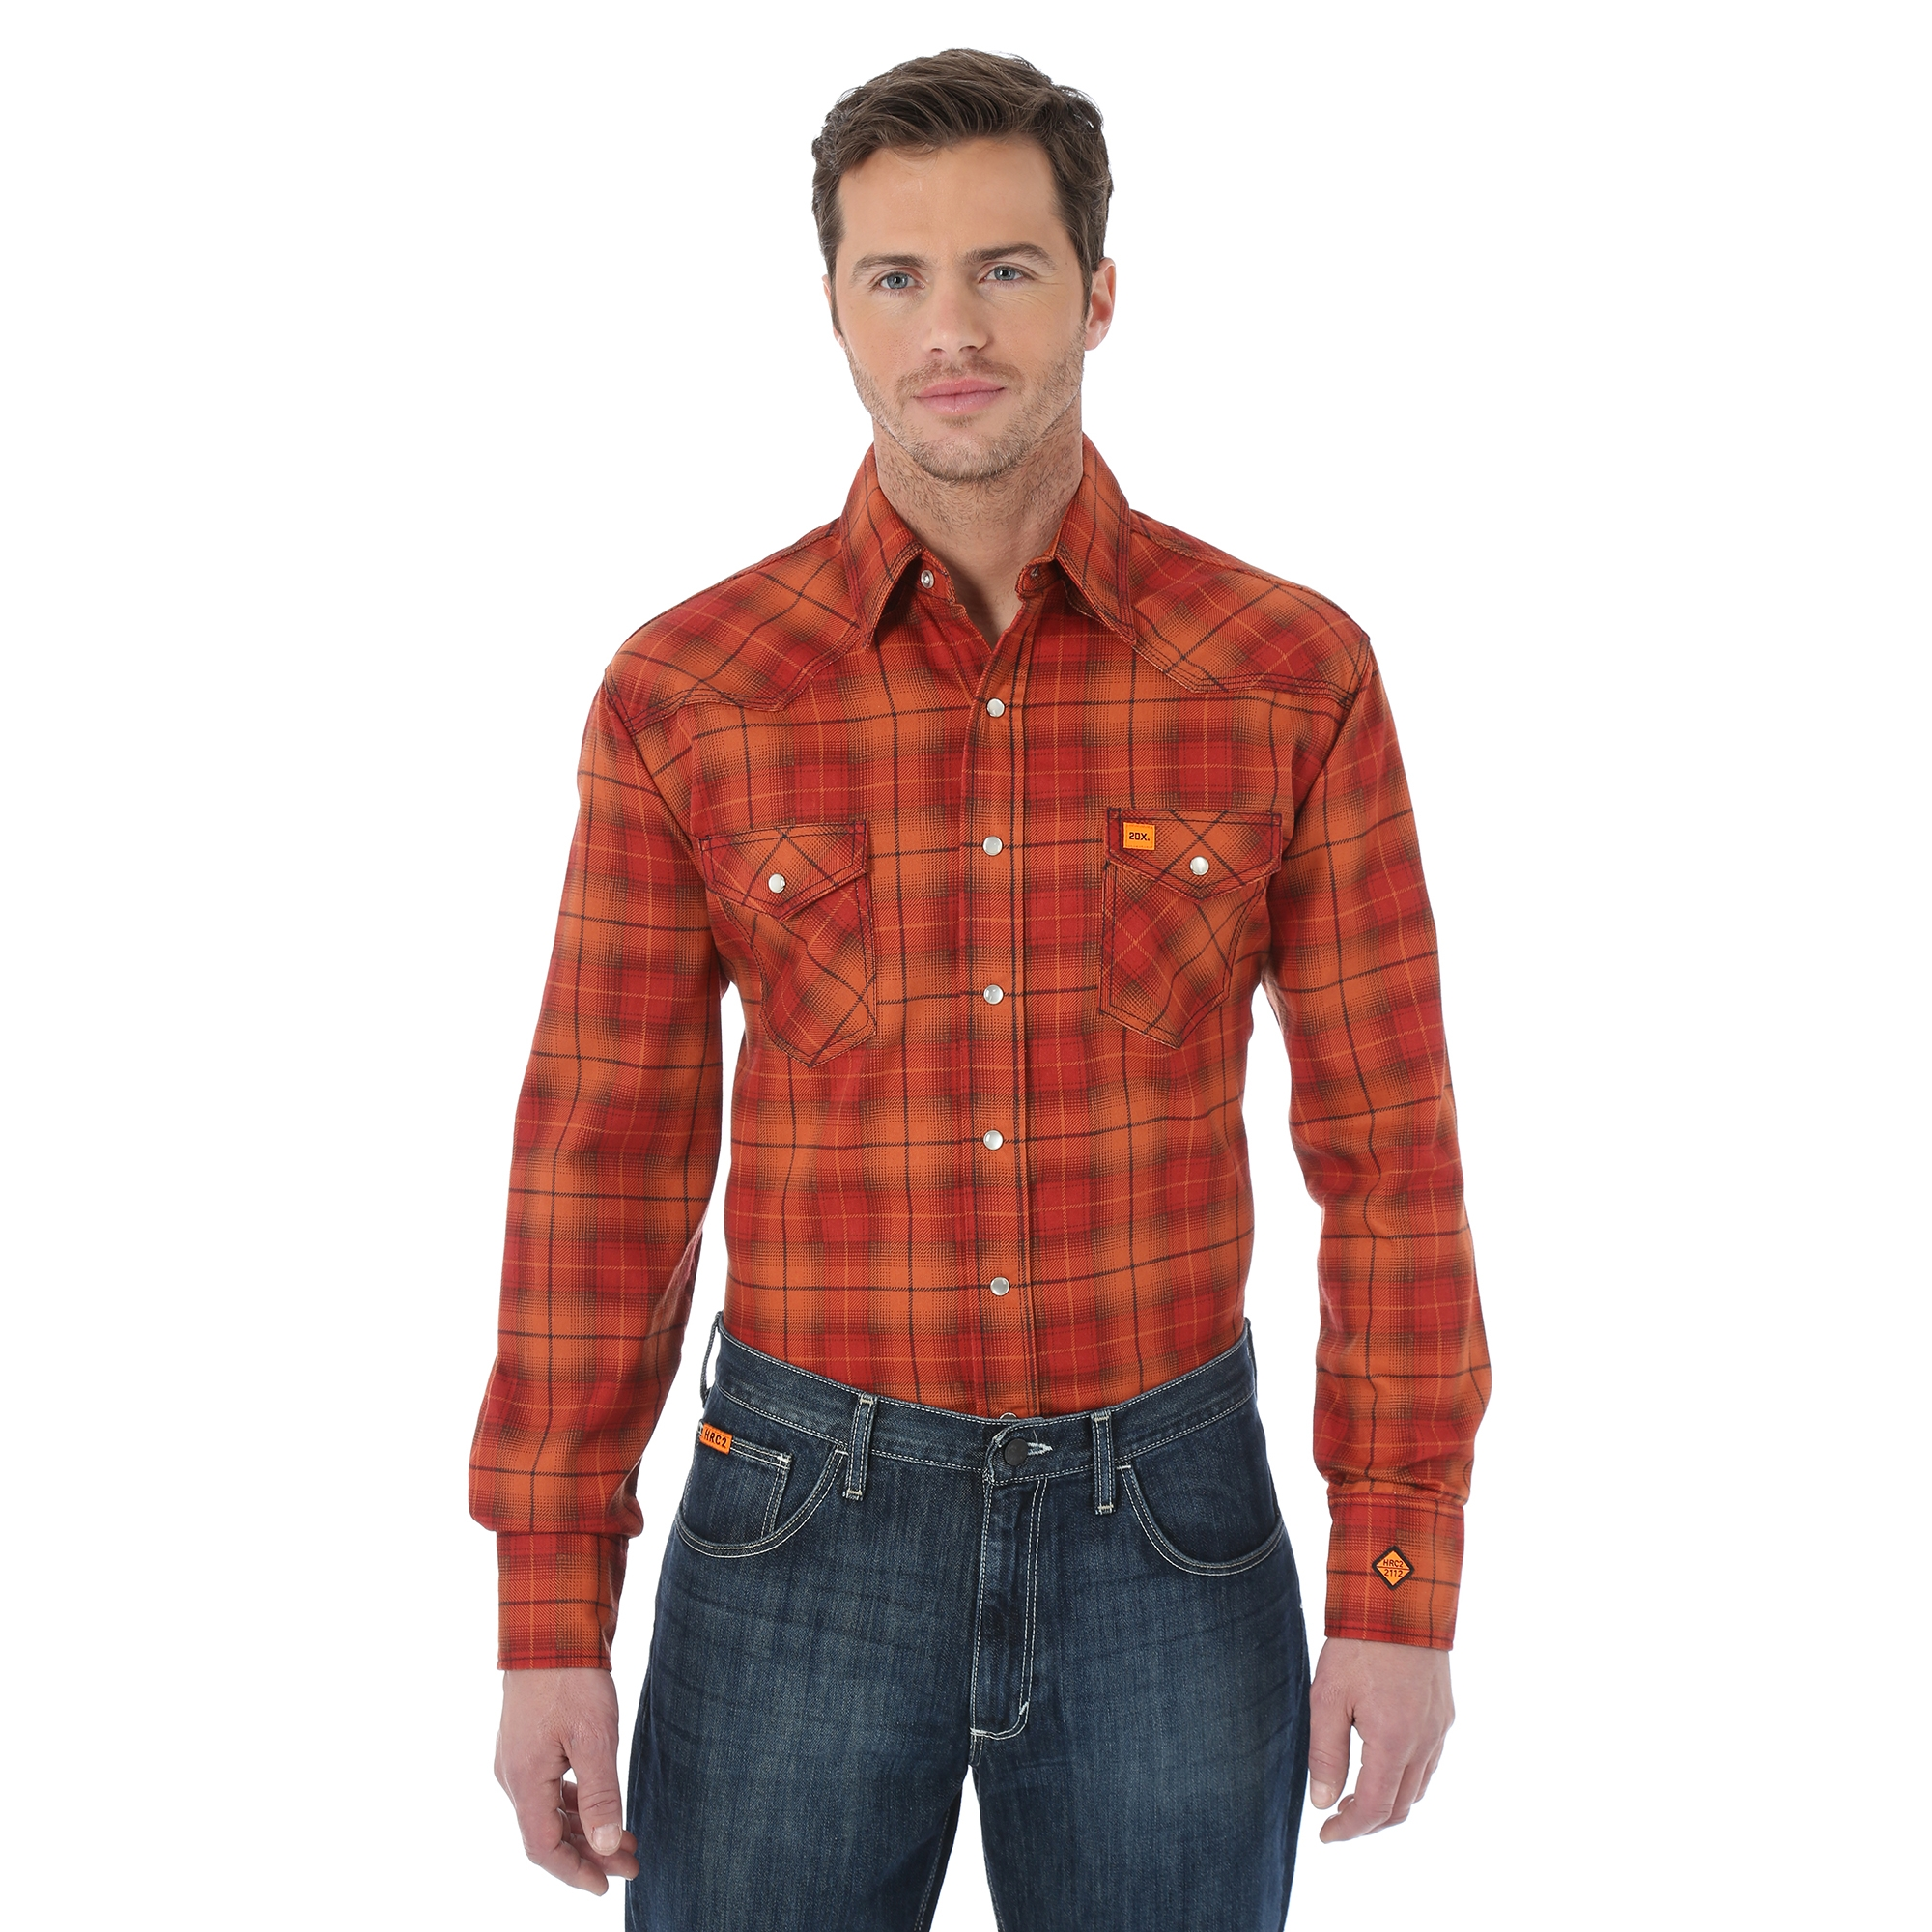 WRANGLER® FLAME RESISTANT 20X® LONG SLEEVE WORK SHIRT- Orange Plaid-Wrangler FR